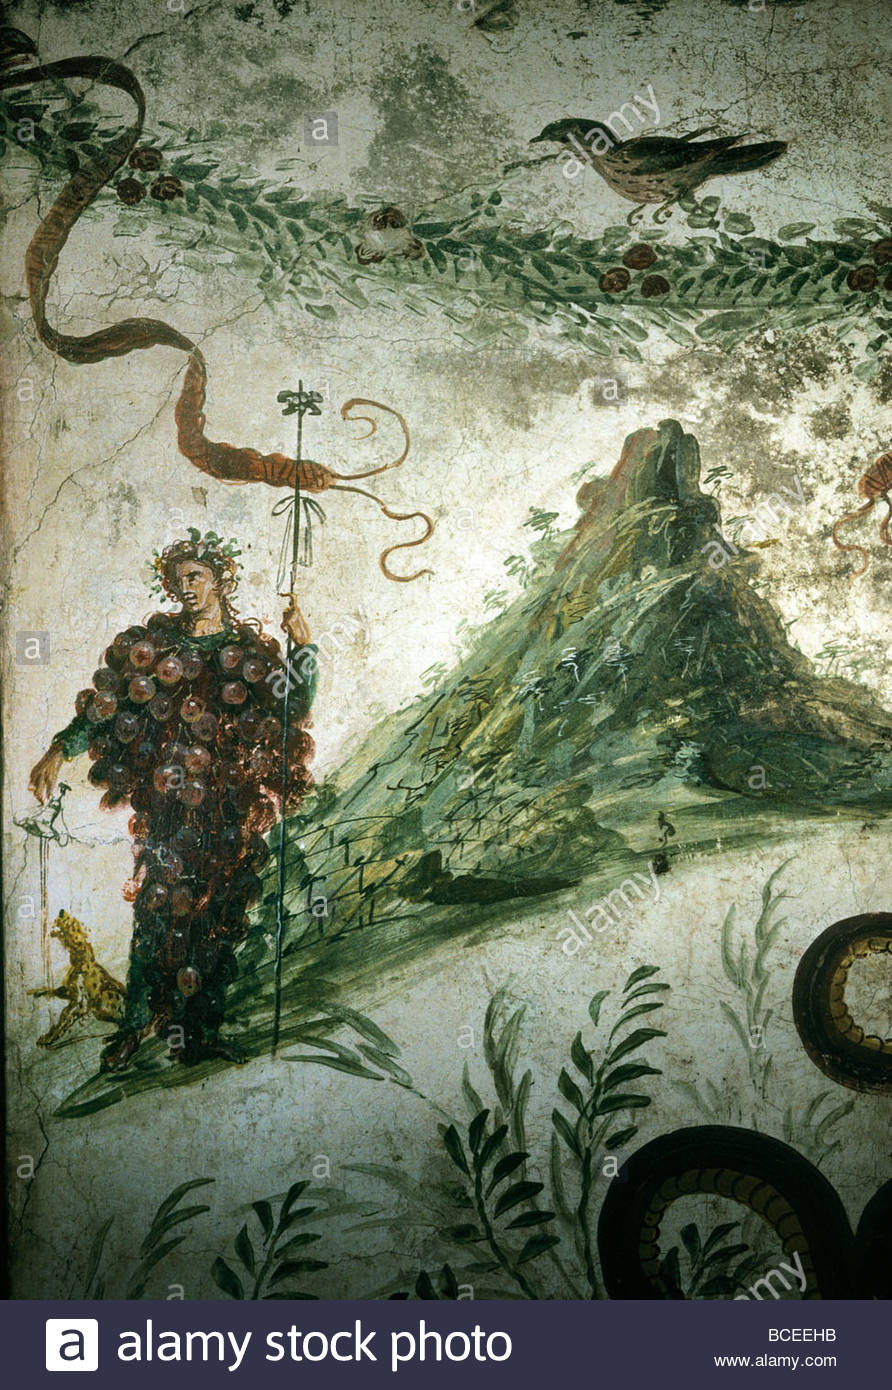 Bacchus, Roman god of wine, stands before Vesuvius in ancient fresco. - Stock Image